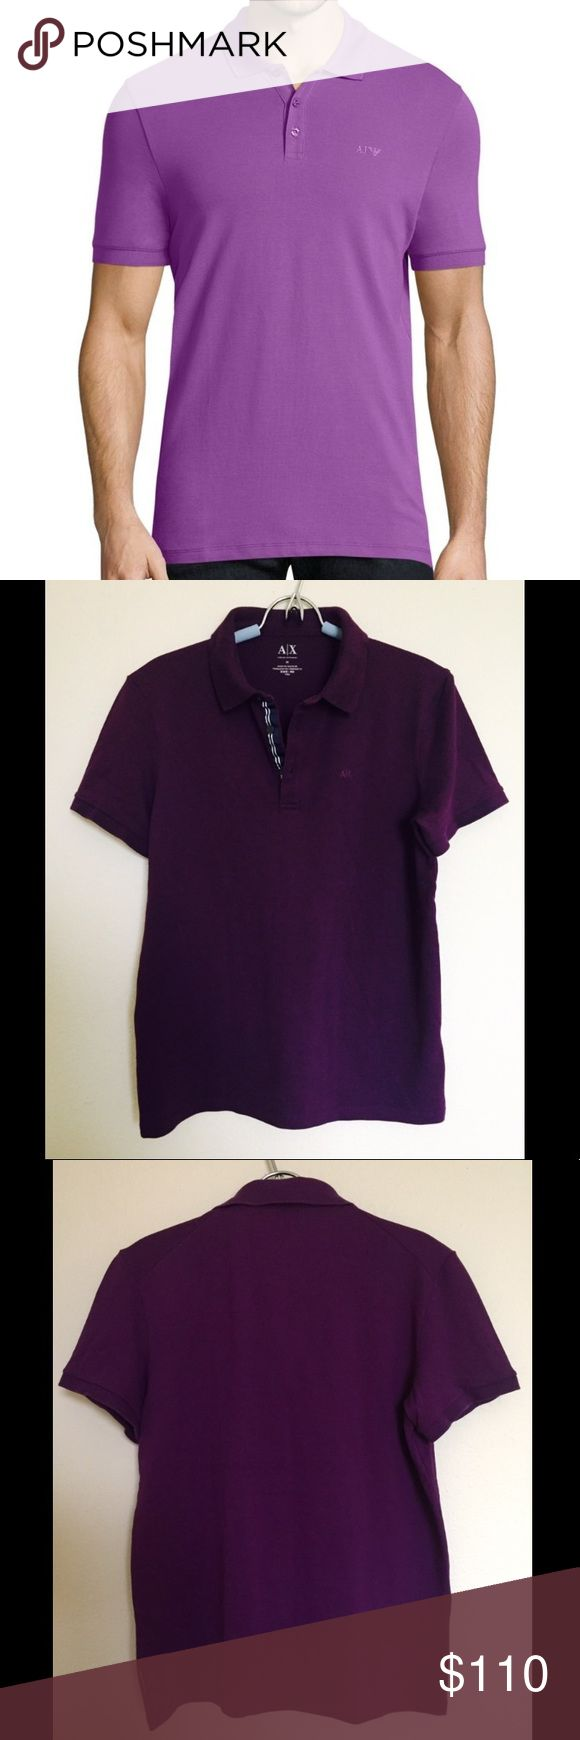 NWOT Armani Exchange purple pique polo top Classic and versatile pique polo top from Armani Exchange. Excellent condition, no stains or tears. Beautiful purple color and super soft material. Classy navy lines contrasting with purple color. A X embroidered on the chest and tag on the side. It's Medium and slim fit, so if you're S-M, it will fit just right and slim fitted for regular Medium. Feel free to ask any questions if you have. Thank you🙏 Armani Exchange Shirts Polos